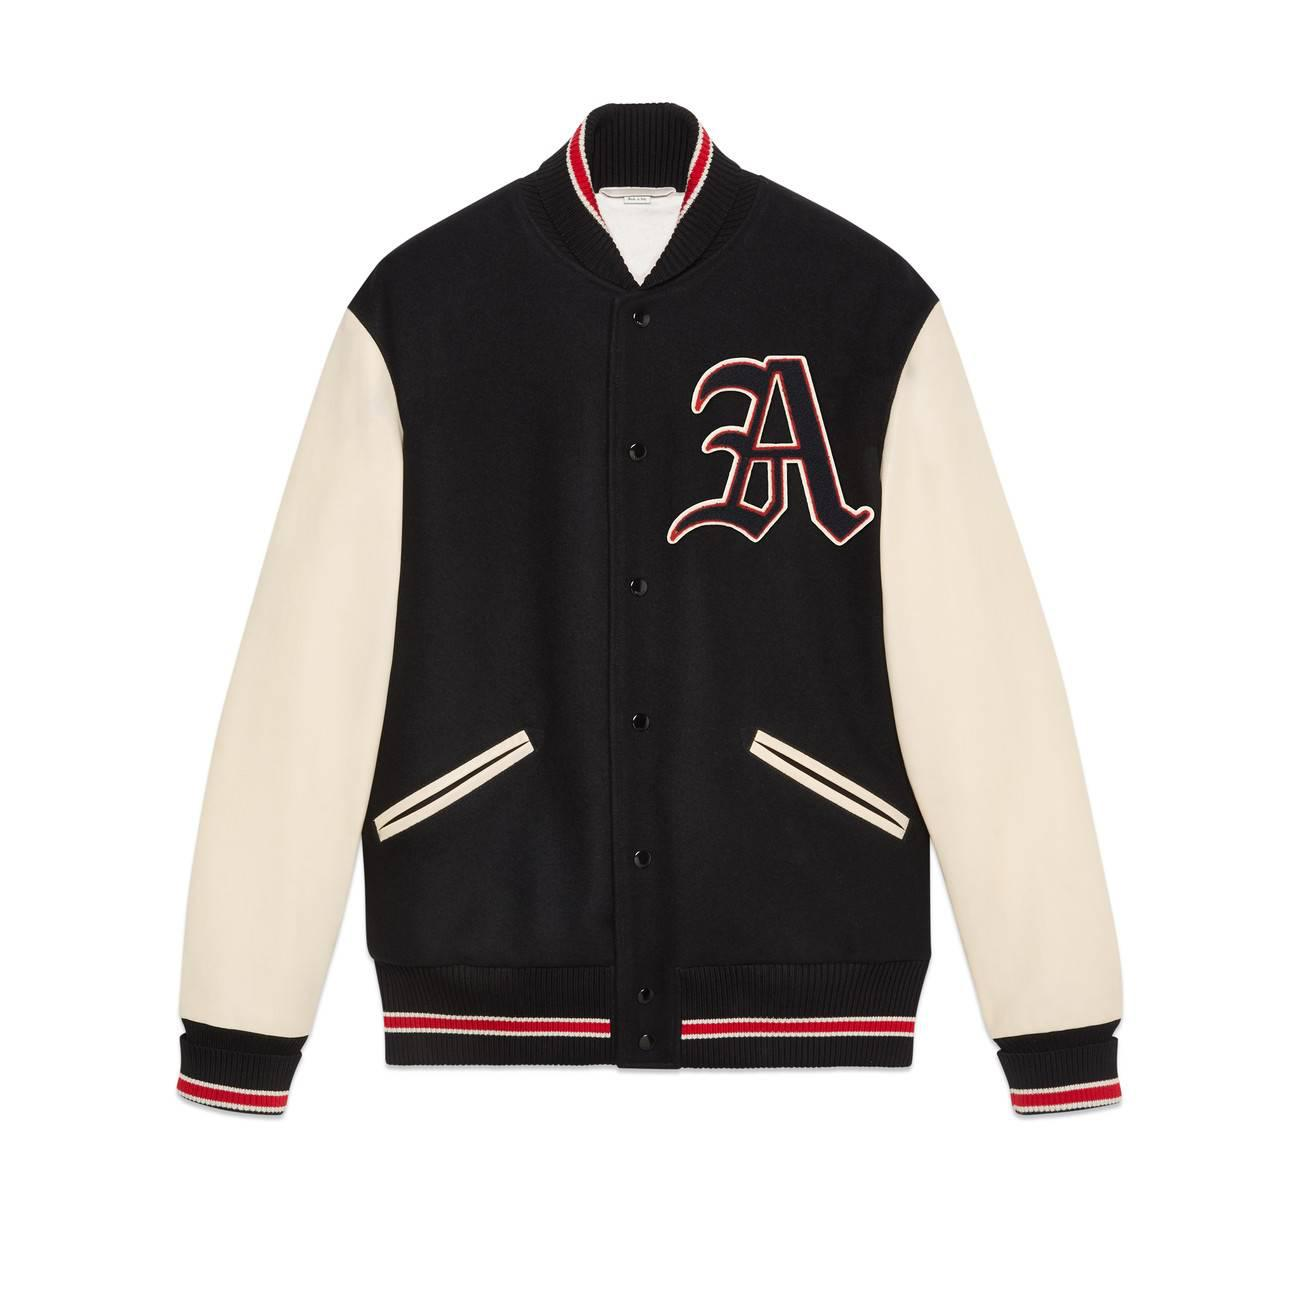 61893cd3c Lyst - Gucci Bomber Jacket With Patches in White for Men